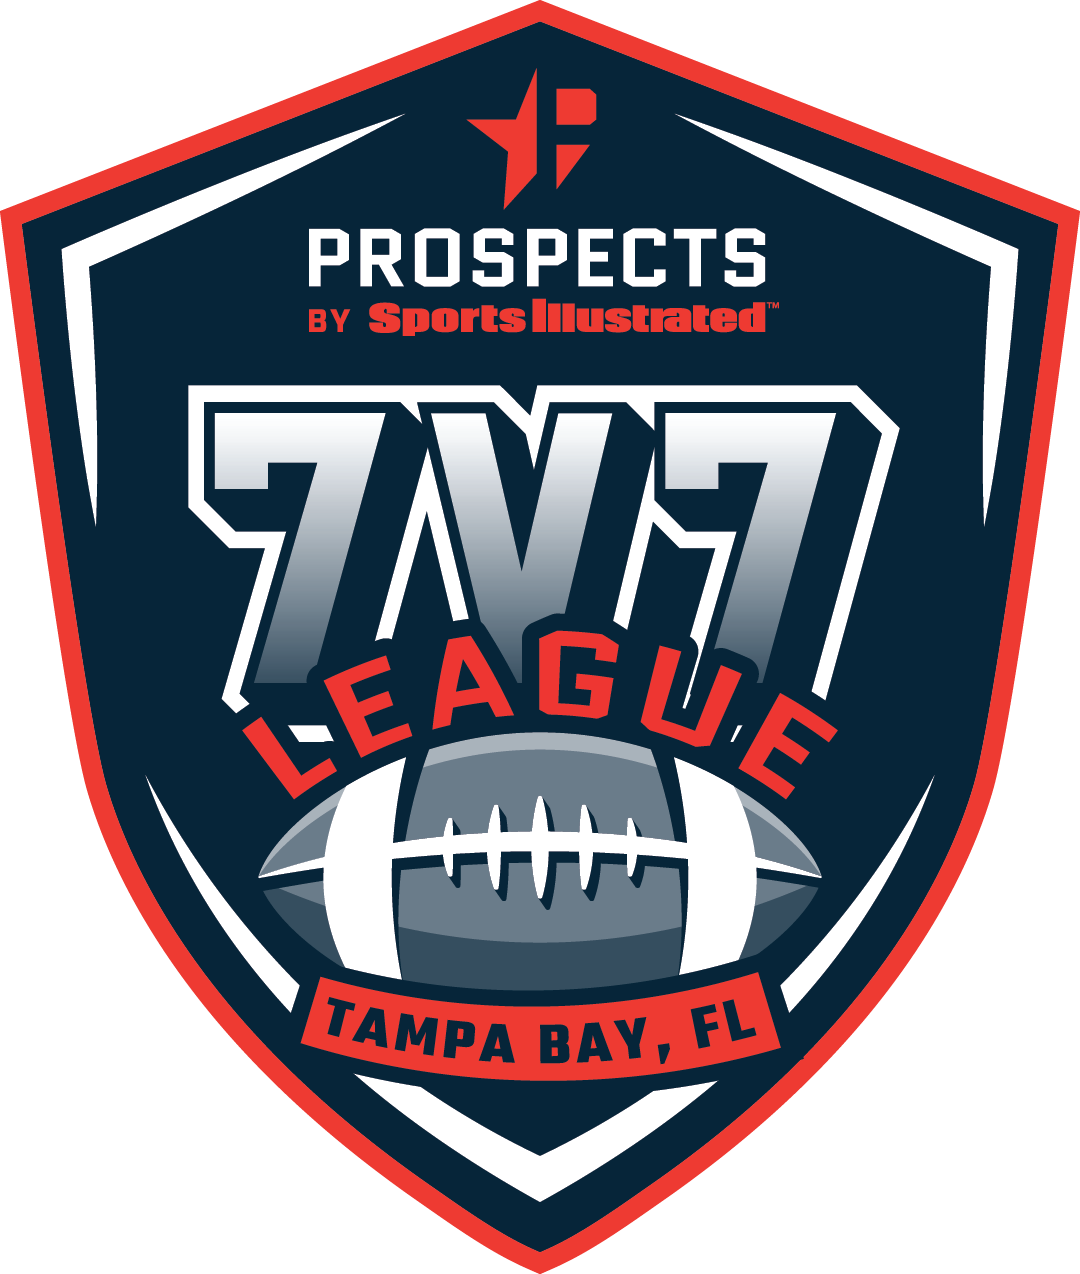 PSI 7 v 7 League - Tampa Bay logo